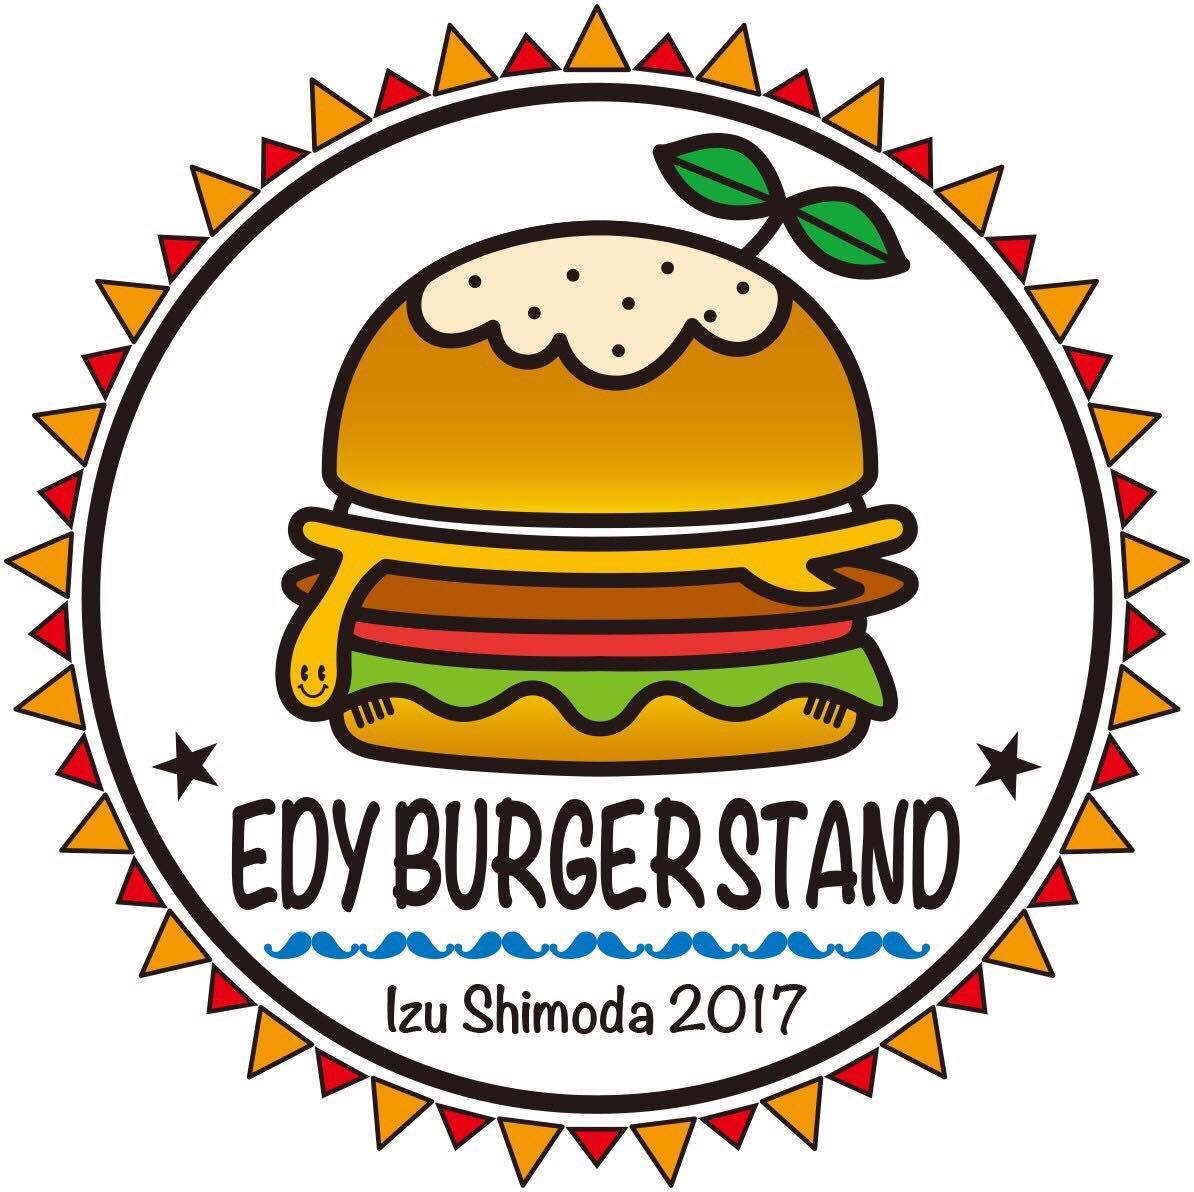 EDY BURGER STAND